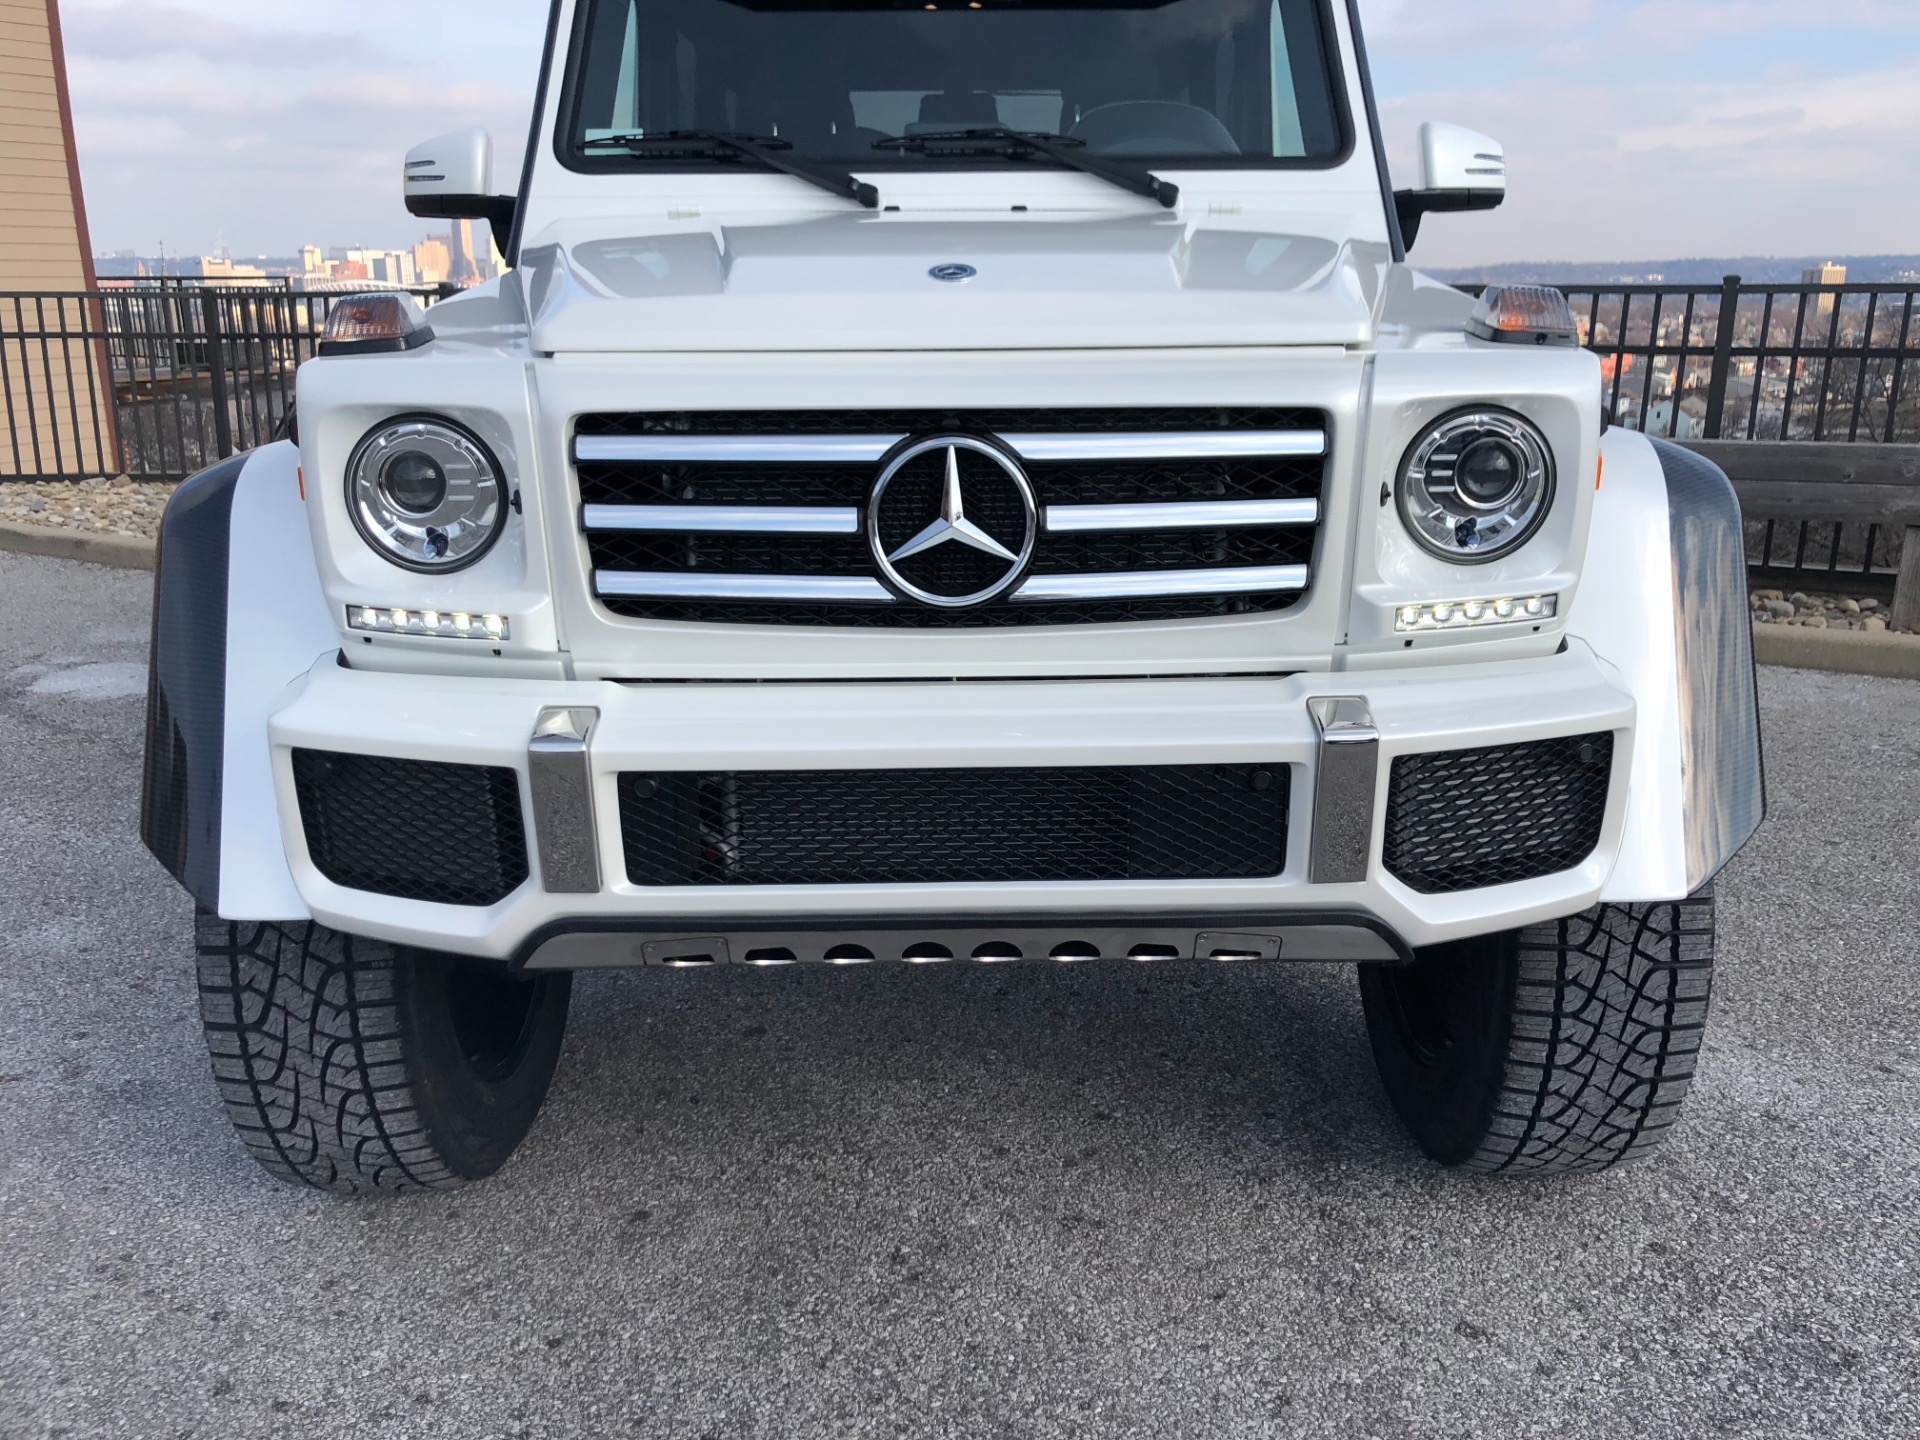 2018 mercedes benz g 550 4x4 g 550 4x4 squared stock 271912 for sale near peachtree city ga. Black Bedroom Furniture Sets. Home Design Ideas